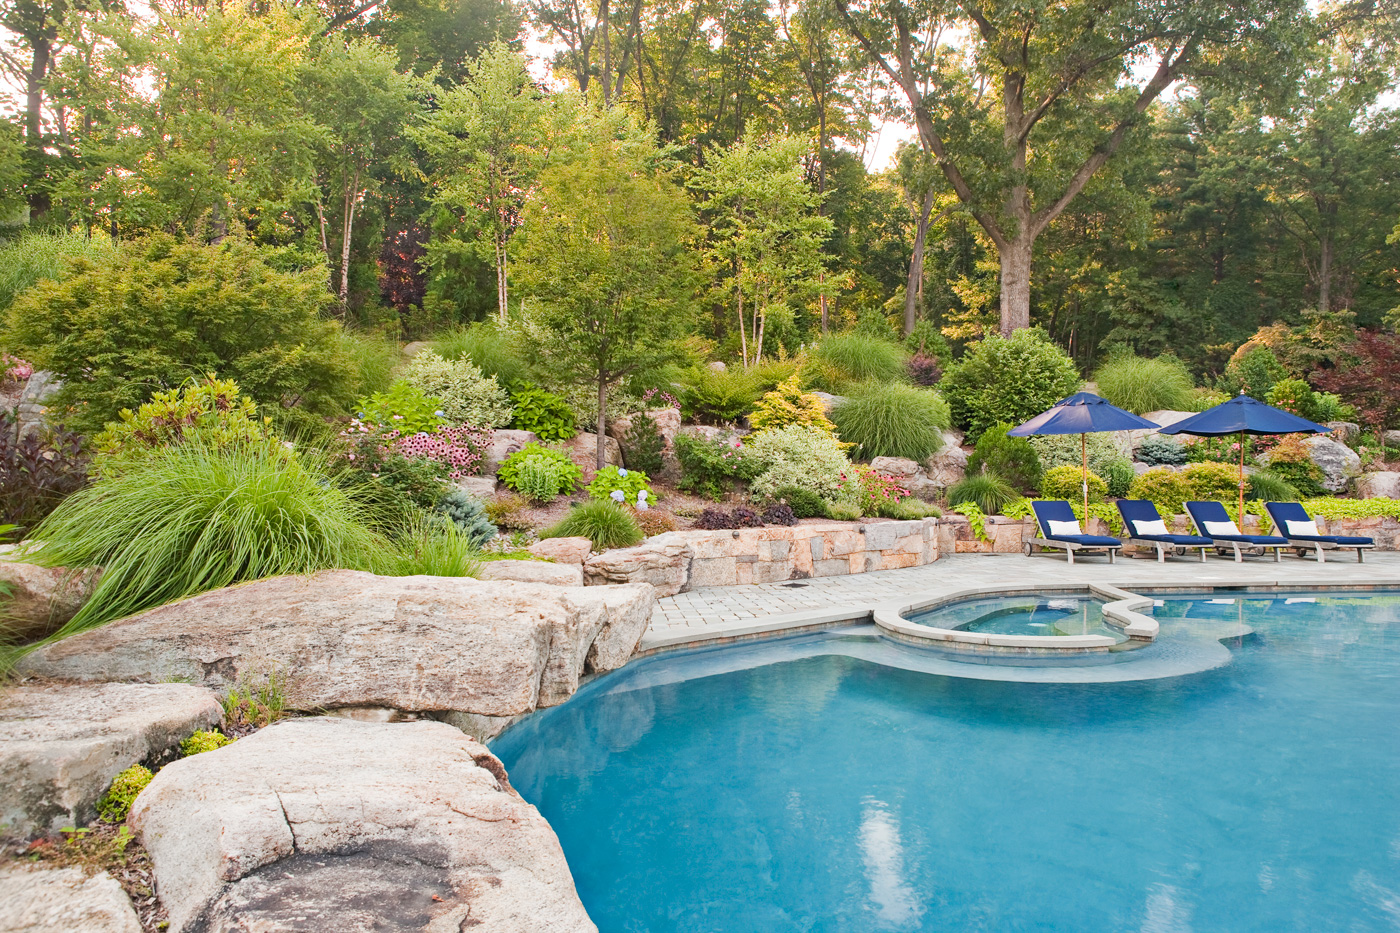 Spa and pool landscaping in nj by cording landscape design for Pool and landscape design